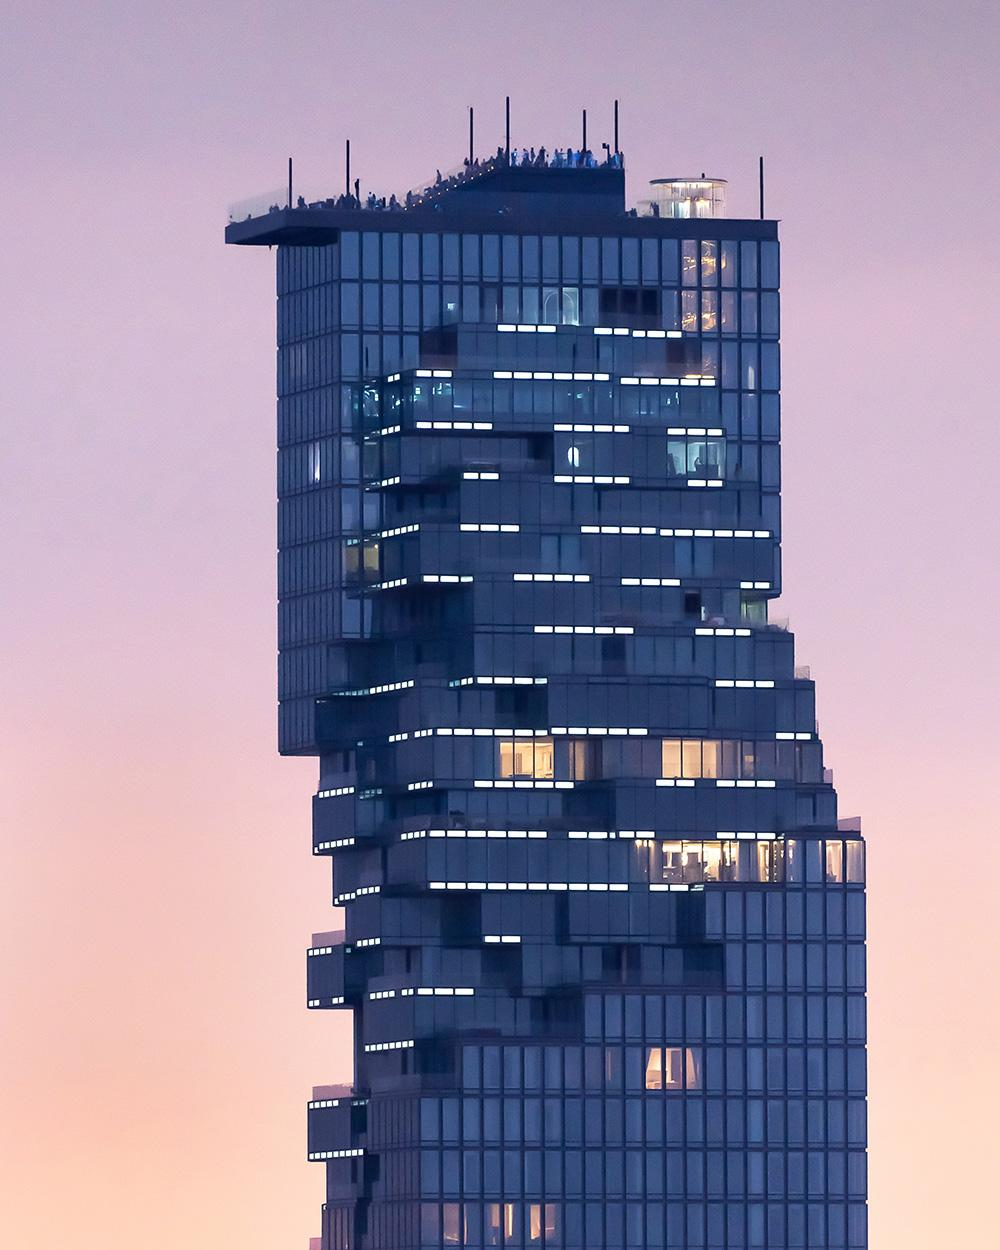 The MahaNakhon tower by Buro Ole Scheeren